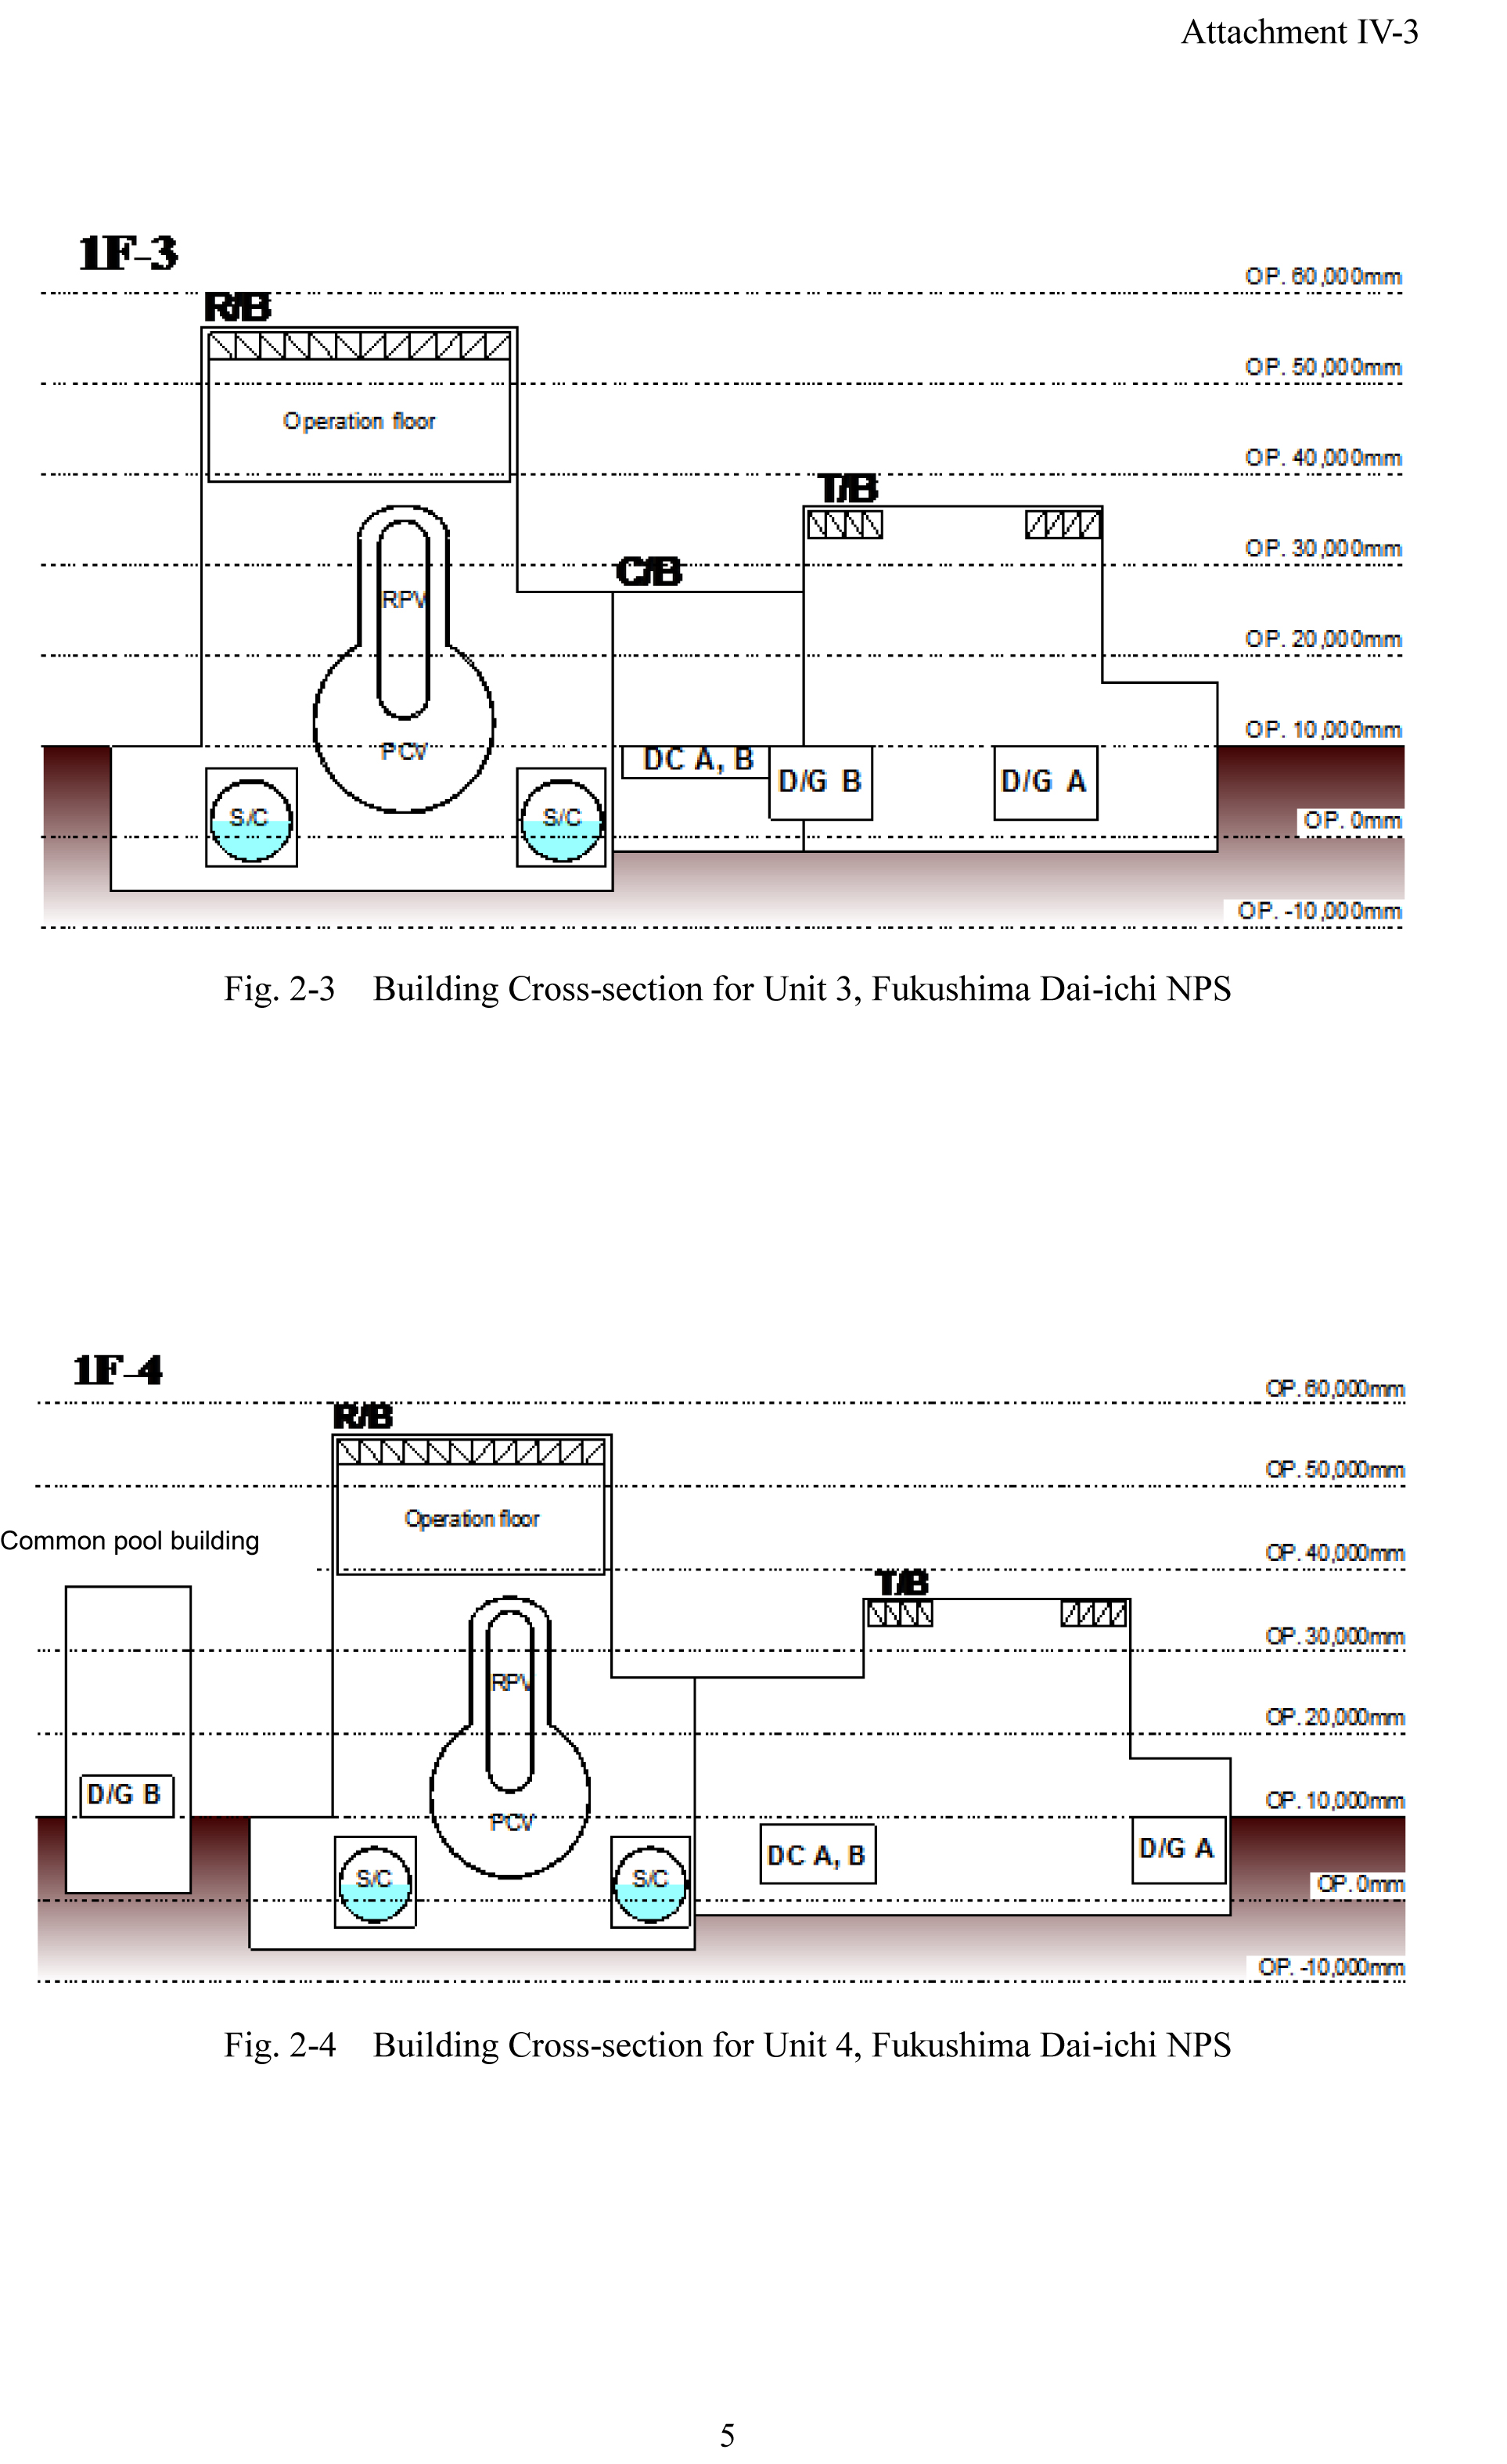 INTRODUCTION OF NUCLEAR (MEHB513): Reactor Building Layout